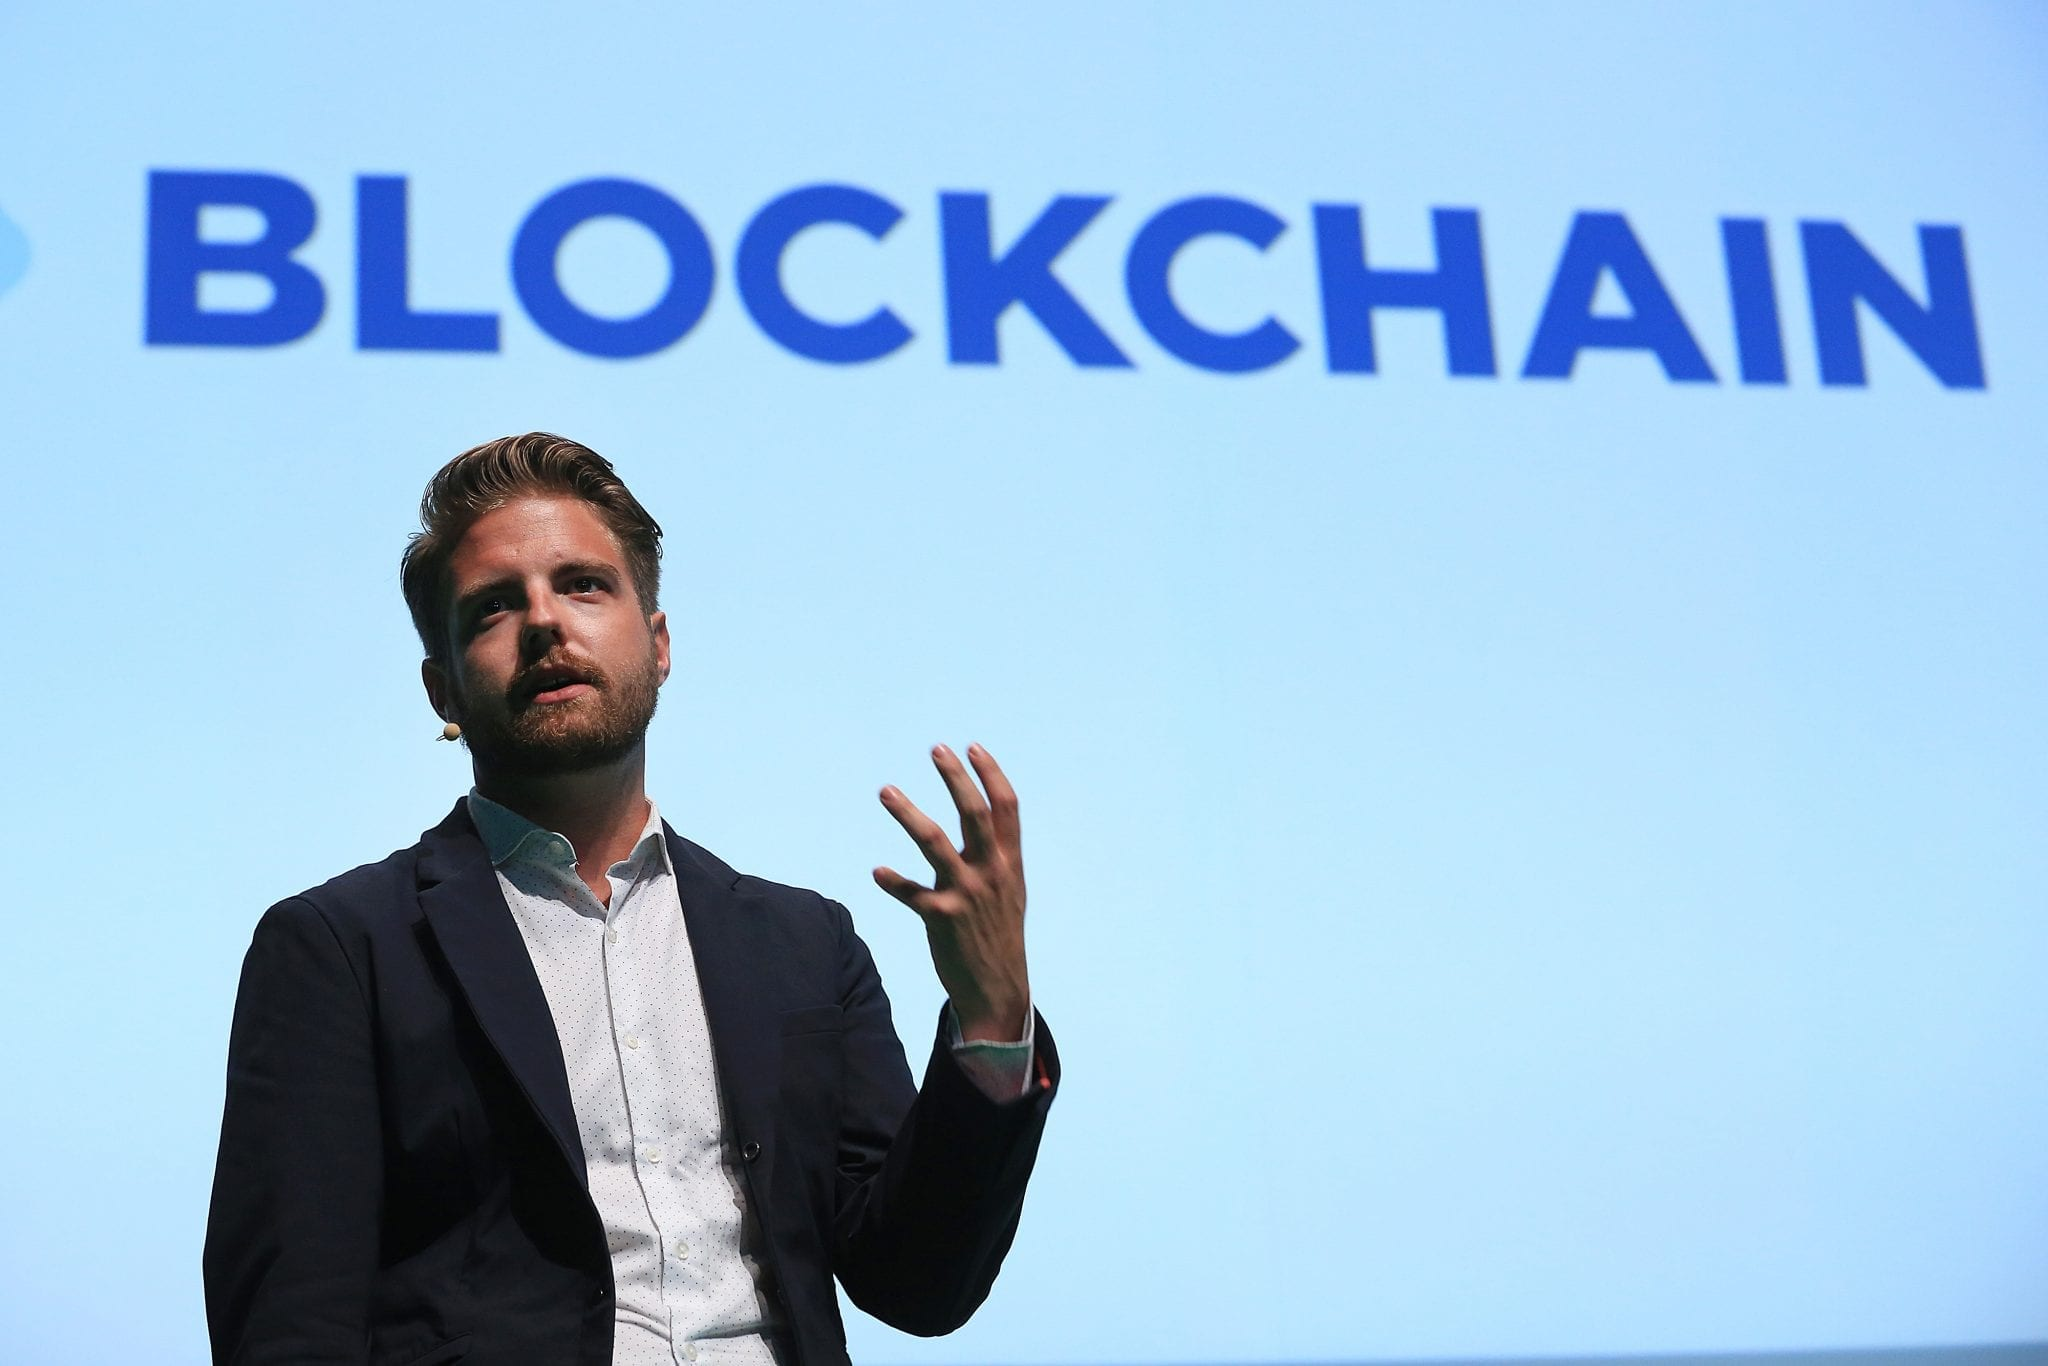 gettyimages 699750656 - Coinbase Adding 50K Users On A Daily Basis Was Reportedly Fake News - Blockchain Wallet Has Such An Influx Of Users, According To Its CEO Peter Smith